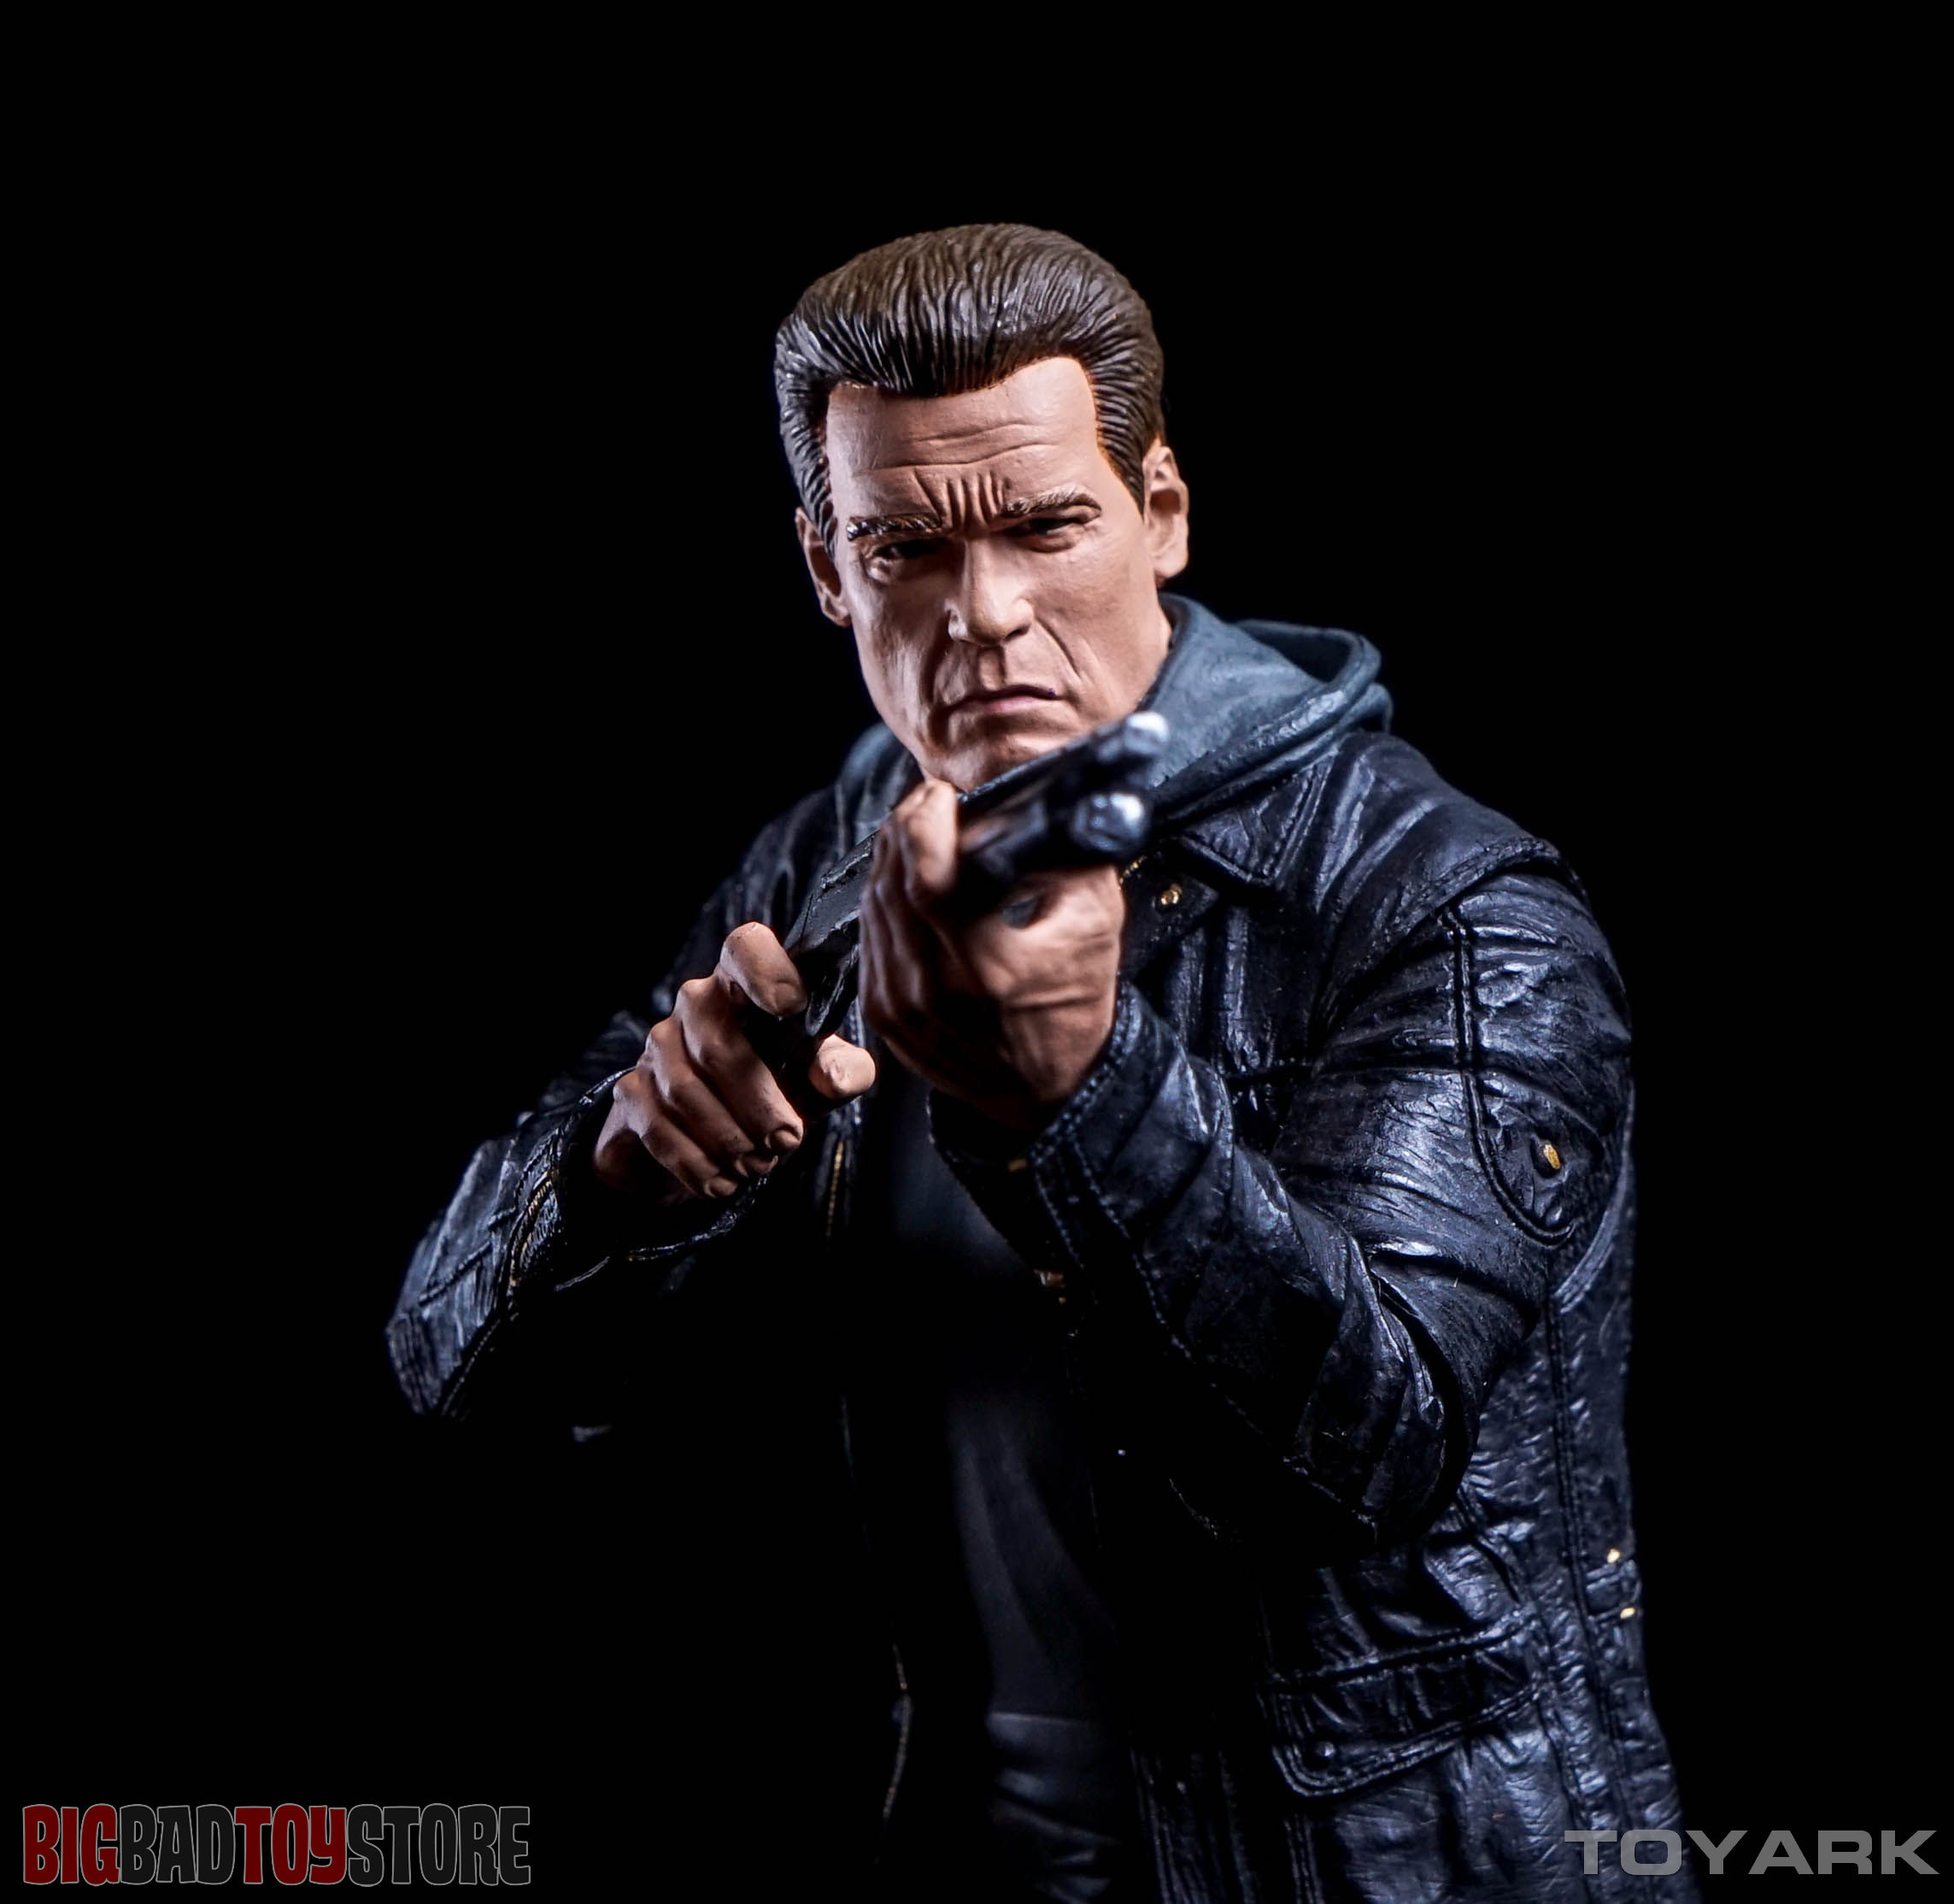 http://news.toyark.com/wp-content/uploads/sites/4/2015/10/NECA-Guardian-T800-Terminator-Genisys-029.jpg